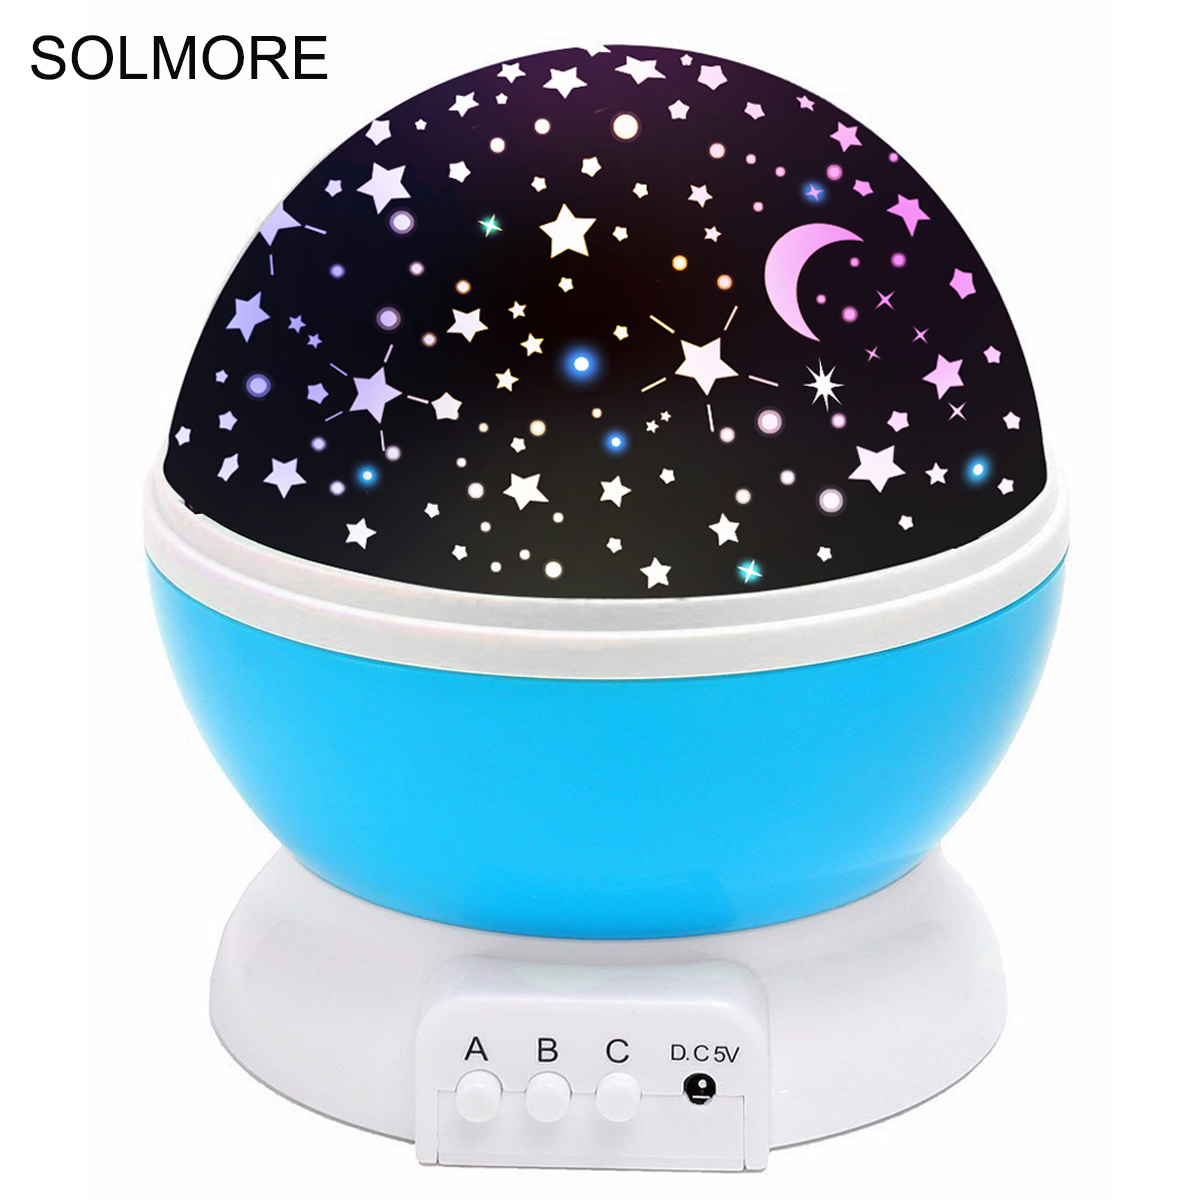 Solmore Star Projector Lamp Night Light 360 Degree Romantic Room Rotating Cosmos Star Projuctor,Christmas Decorations Light Lamp Starry Moon Sky Night Projector Kid Bedroom Lamp